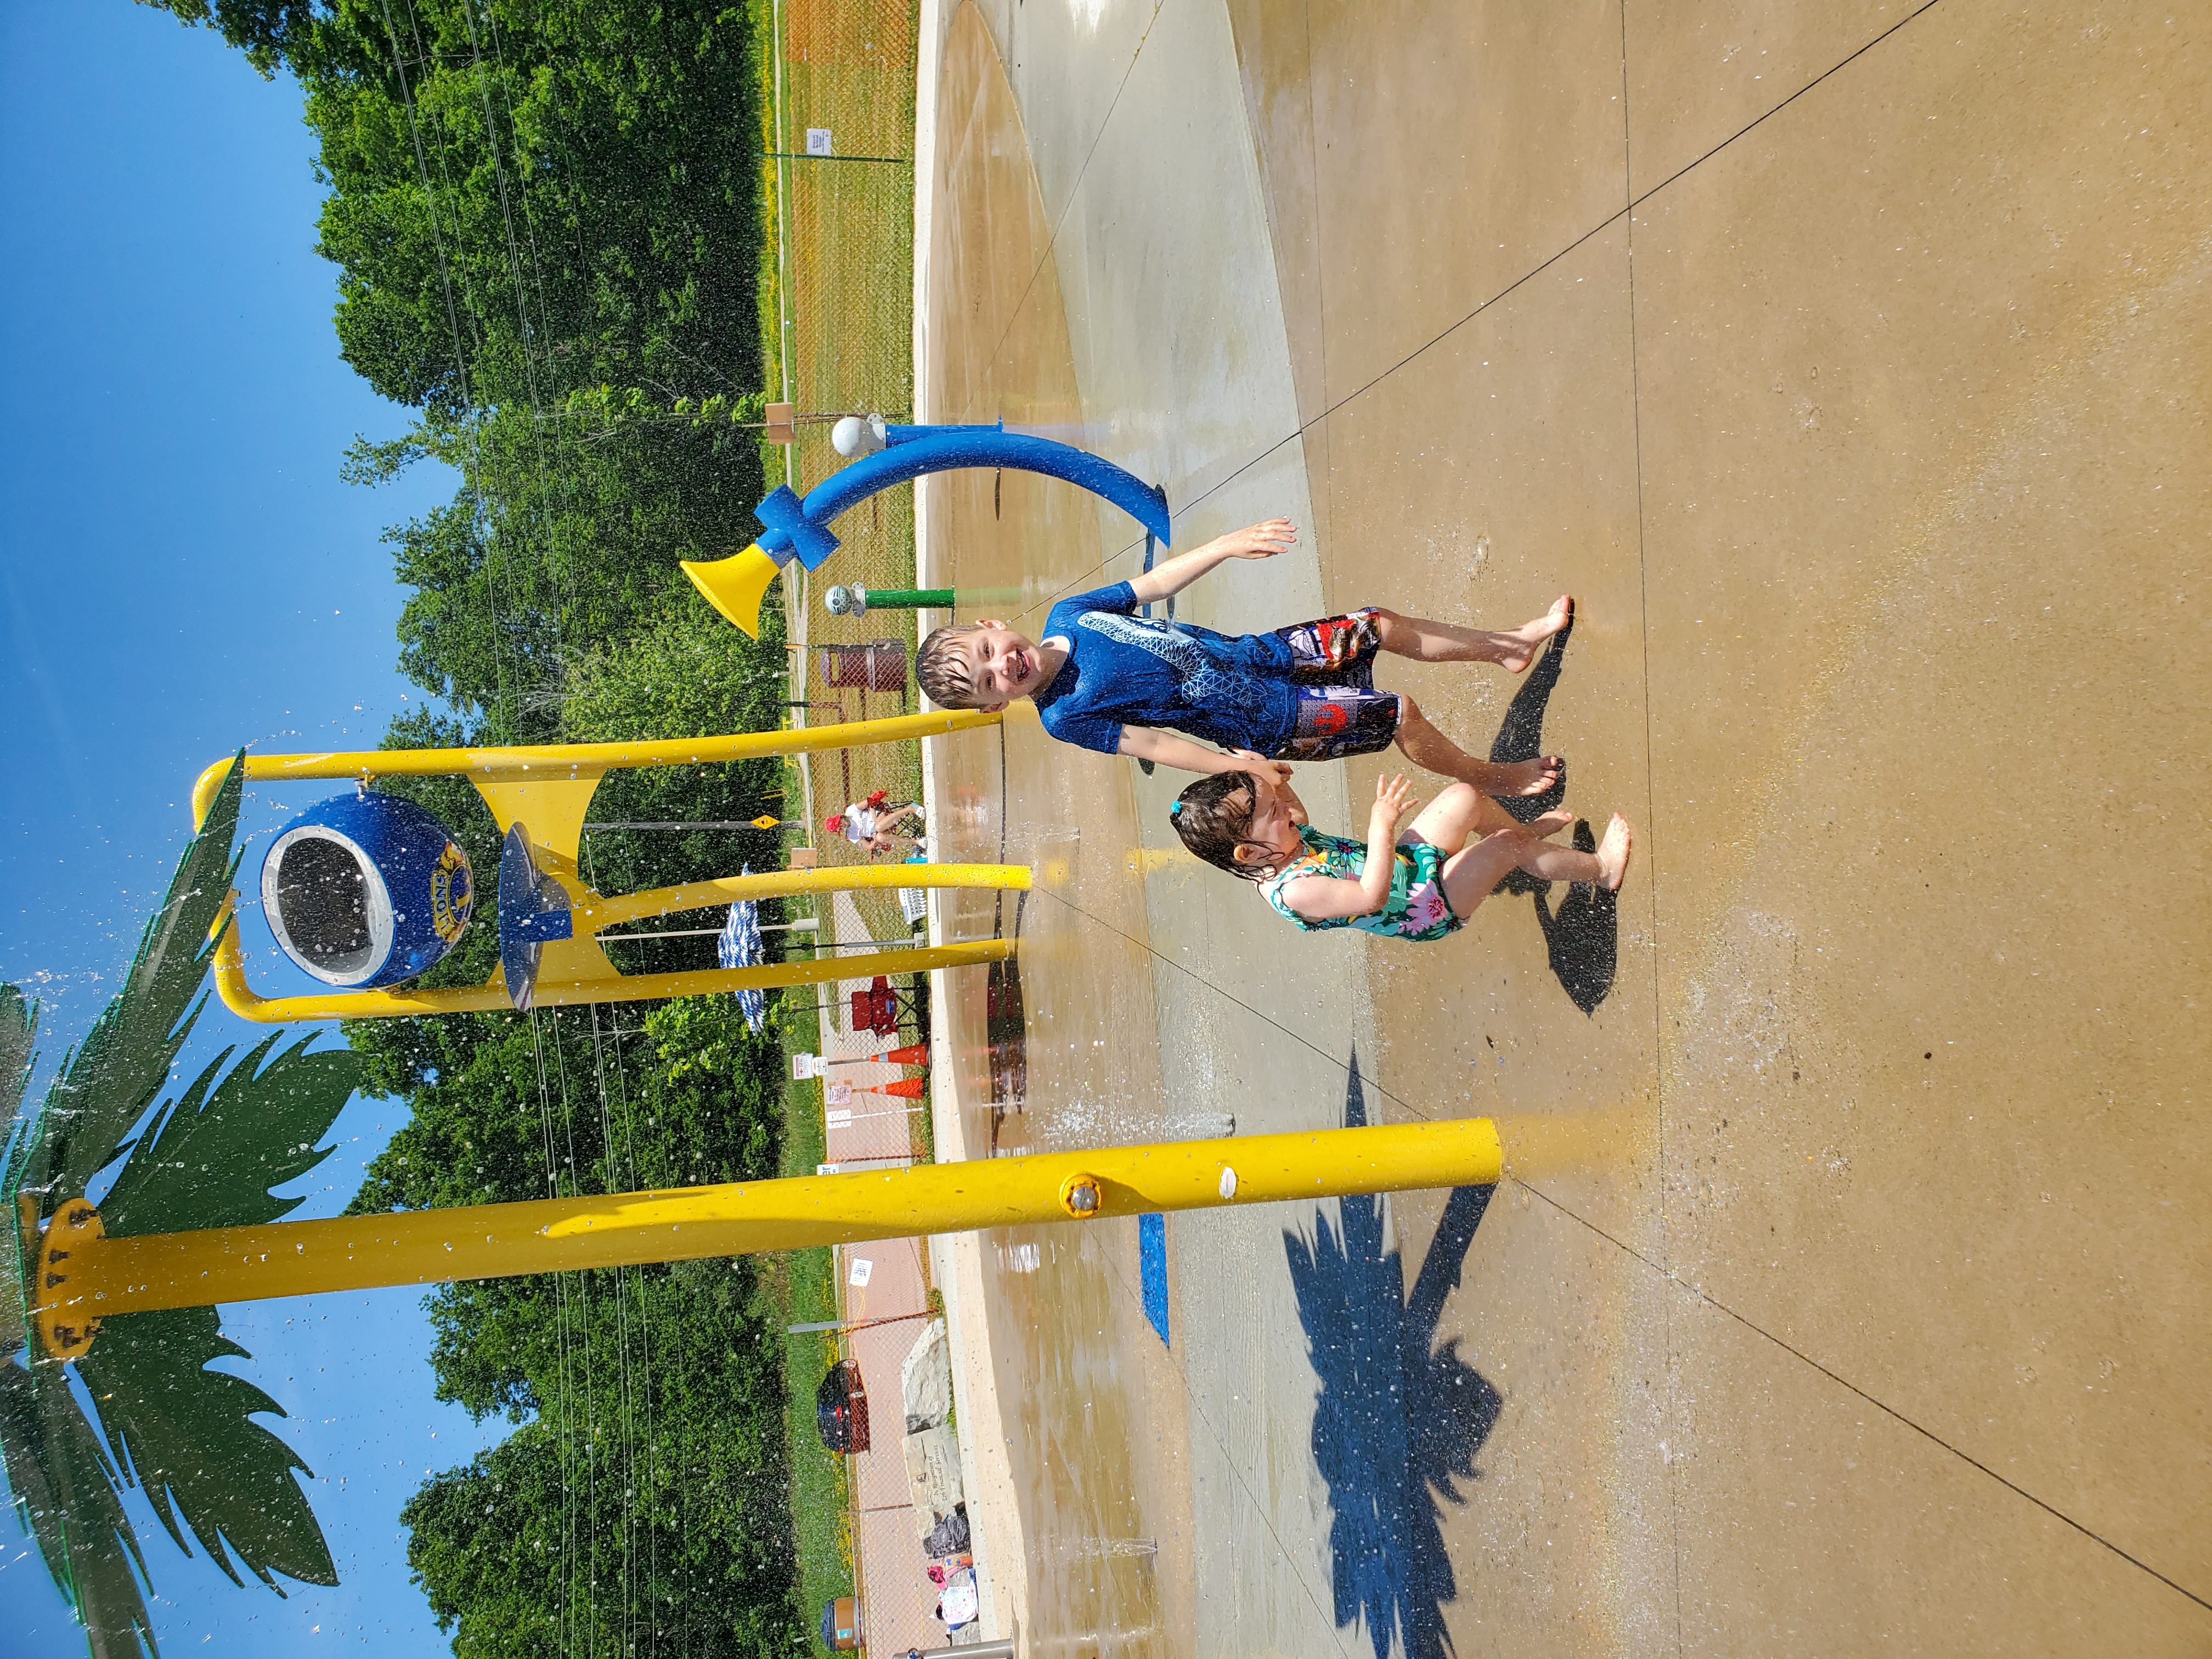 Two young children play in the splash pad under the tree water feature.